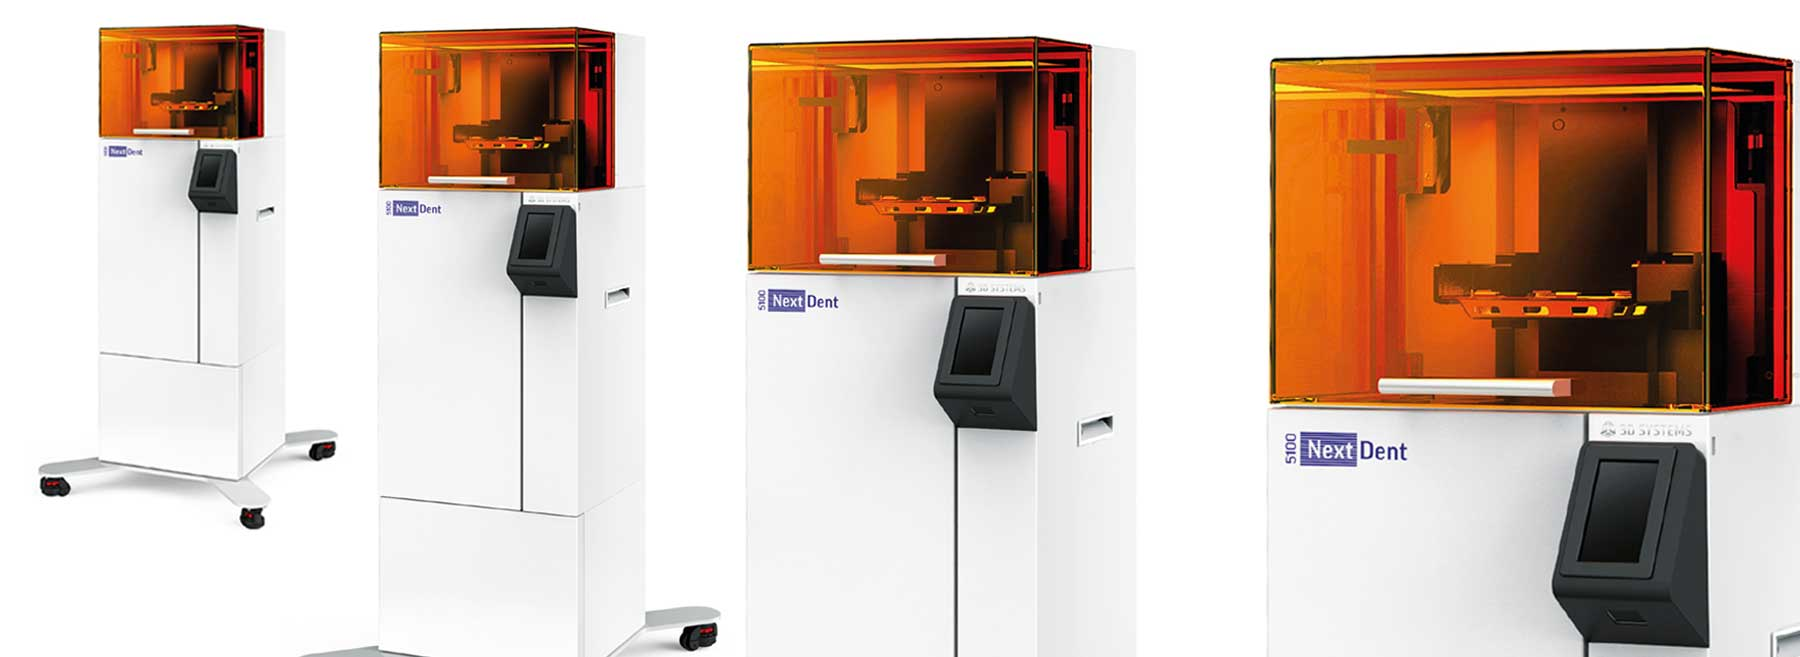 nextdent-5100-3d-printer-revolutionizing-dental-workflow